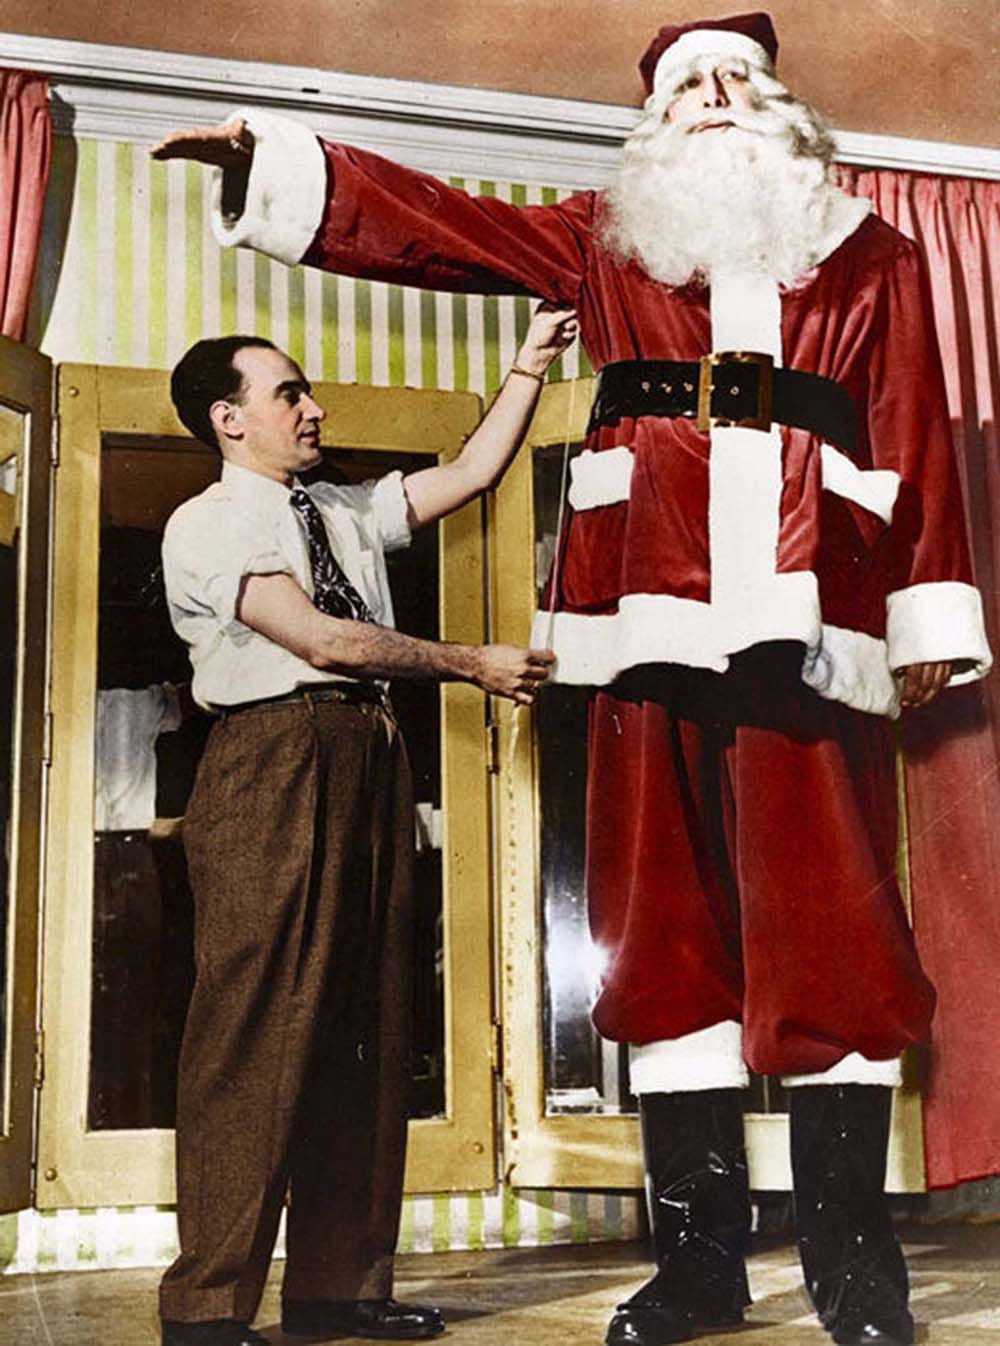 During December 1949, he worked as Santa Claus.